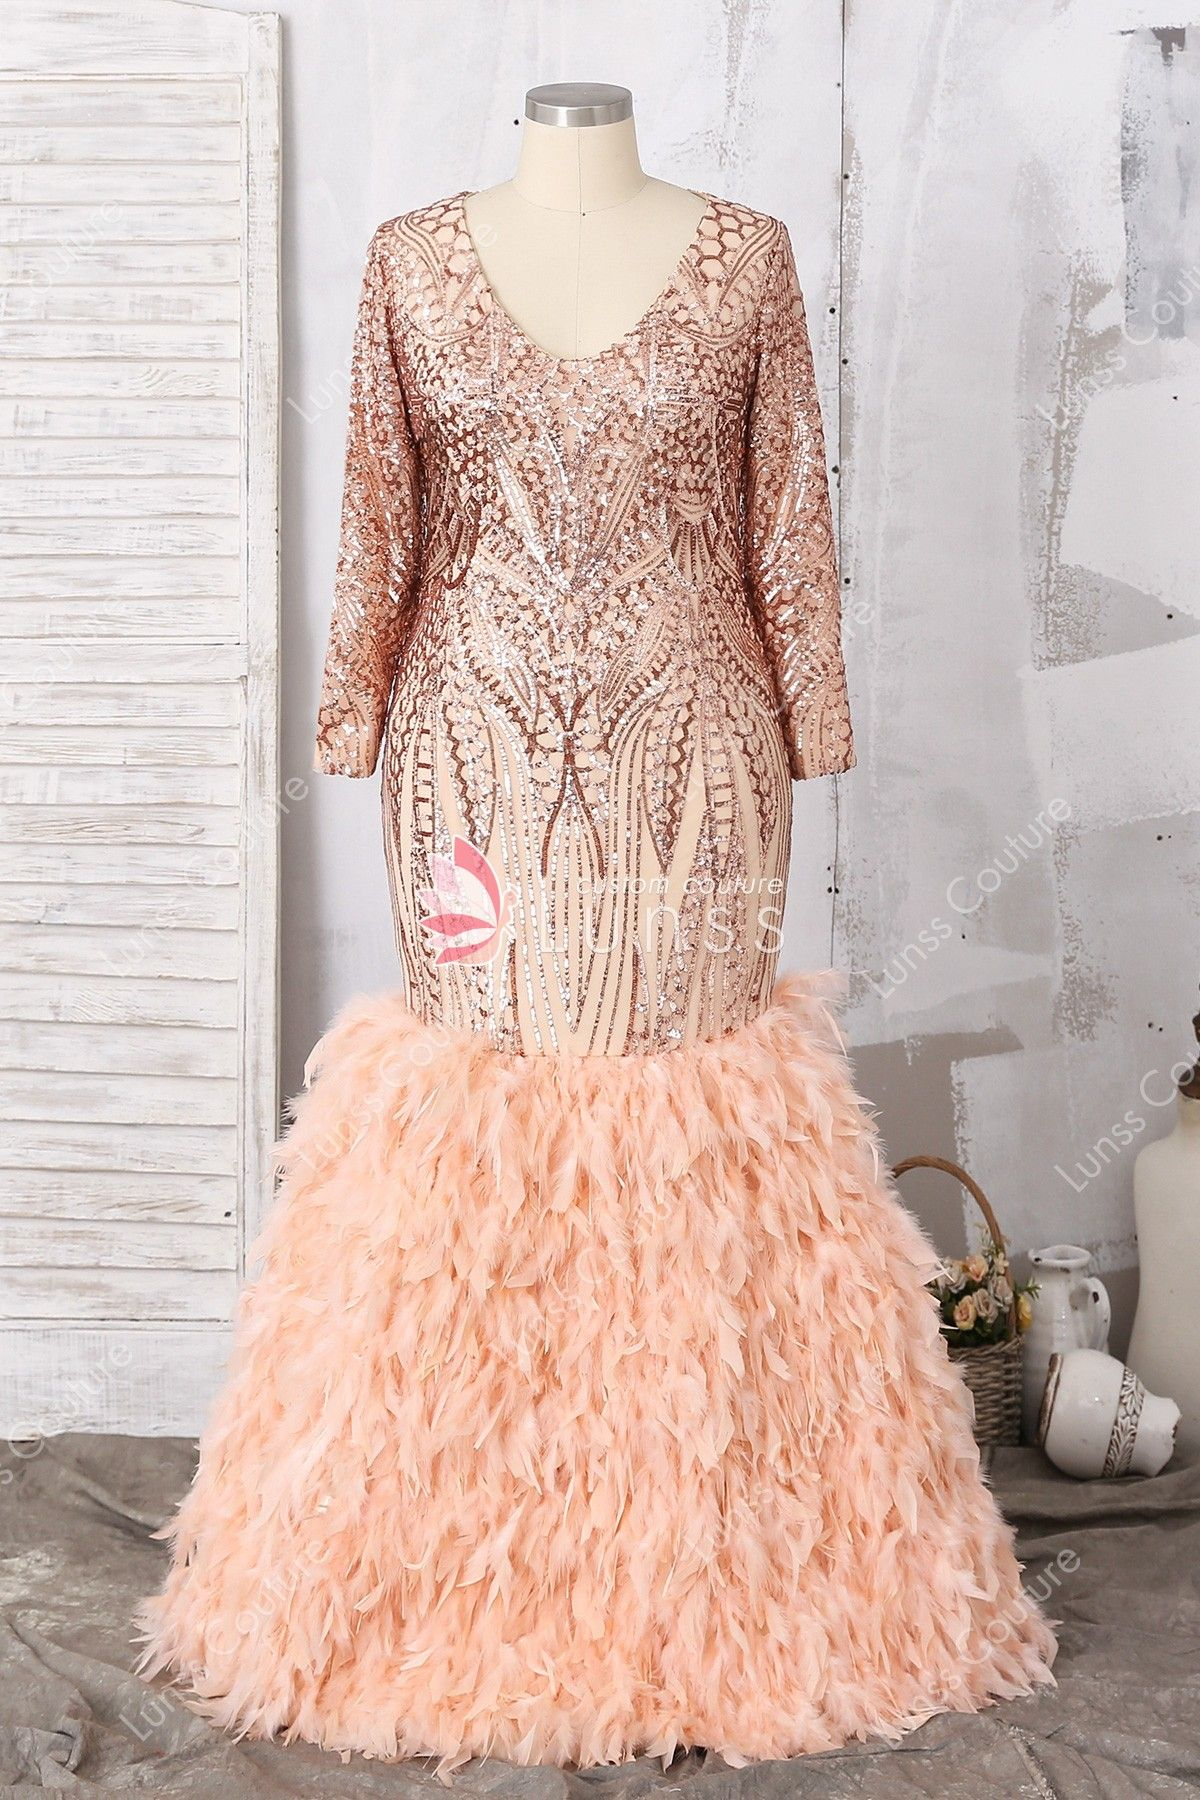 Luxury Plus Size Gold V Neck Long Sleeve Floor Length Sequin Feather Prom Dress Feather Prom Dress Gold Plus Size Dresses Plus Size Long Dresses [ 1800 x 1200 Pixel ]